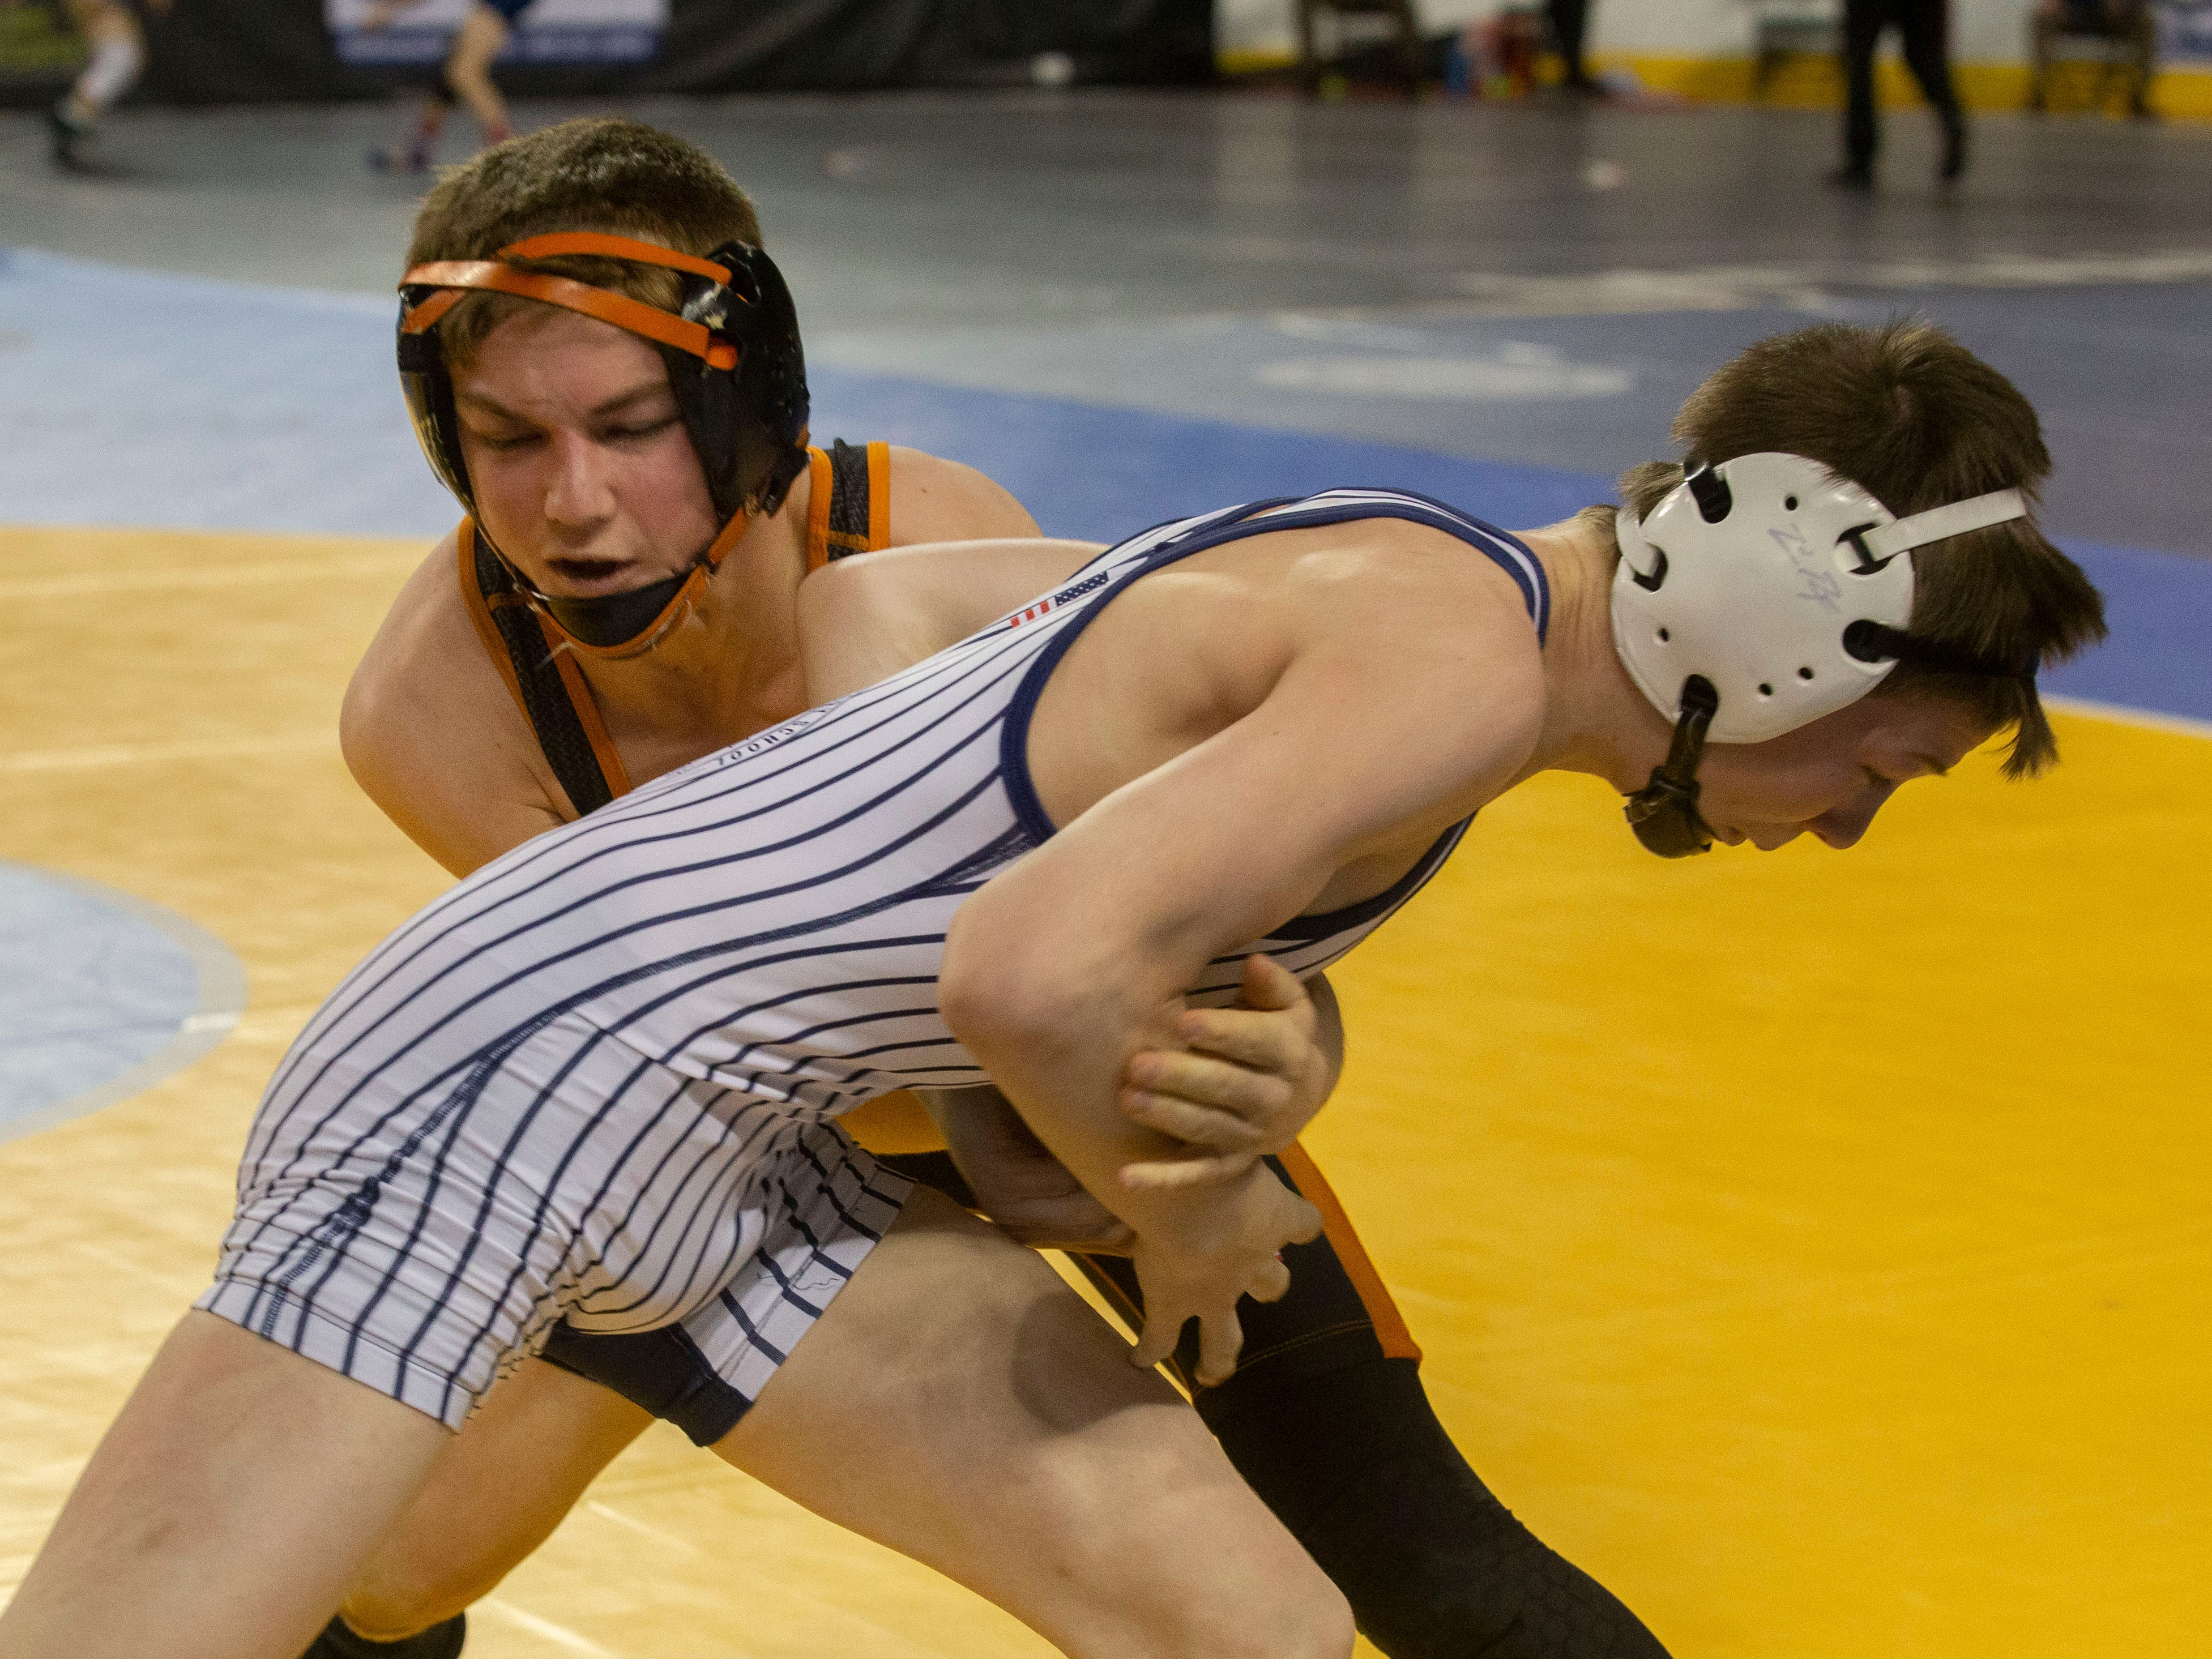 Middletown North's Tyler Klinsky pinned St. Augustine Prep's Ryan Defoney in his second match of NJSIAA State Wrestling opening rounds in Atlantic City, Thursday February 28, 2019